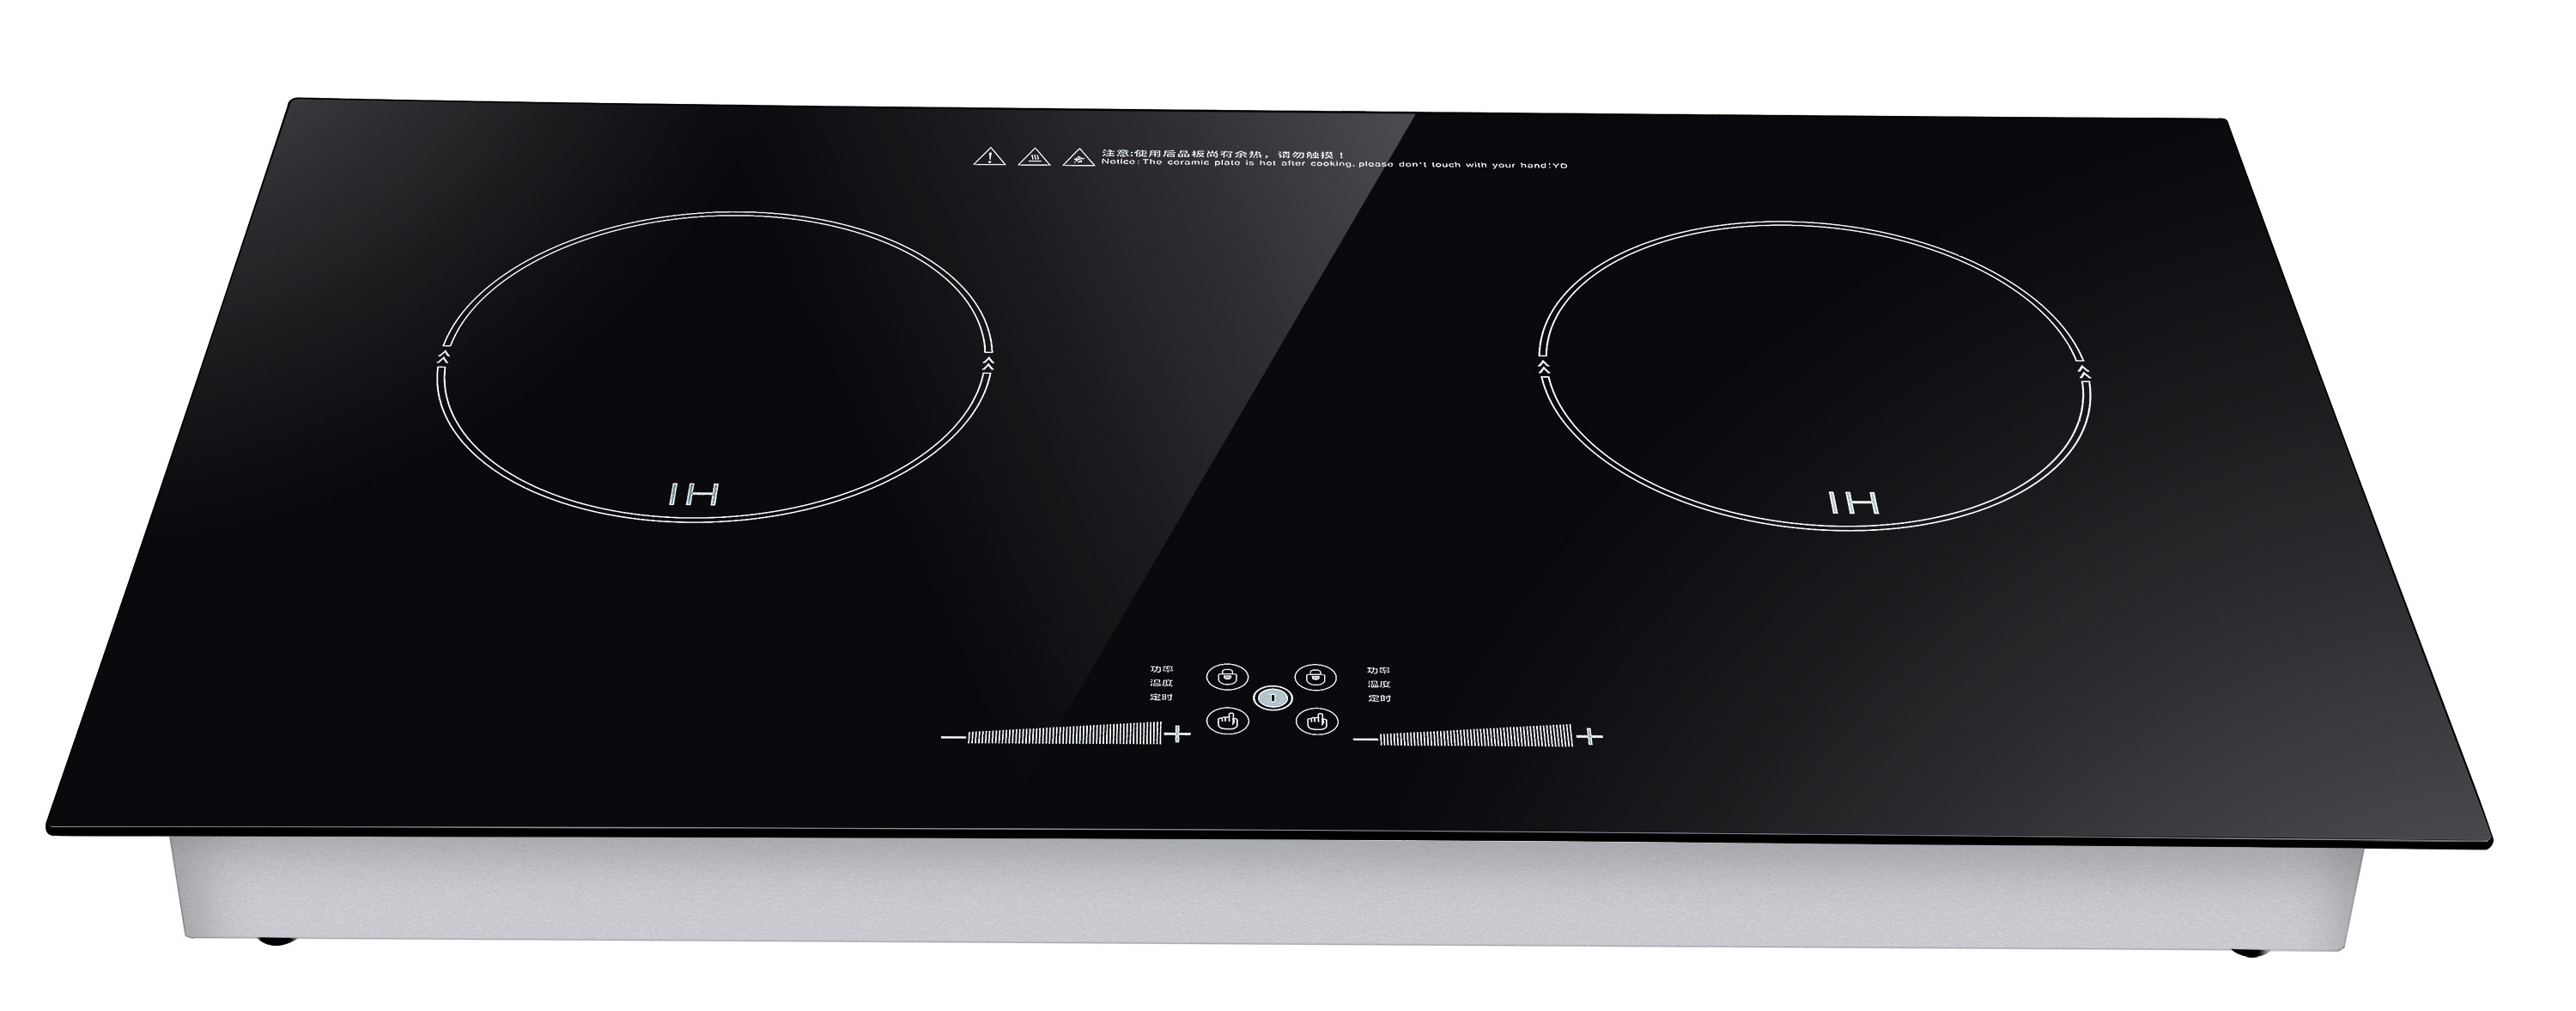 3500W Black Crystal Plate Double electromagnetic commercial induction cooker